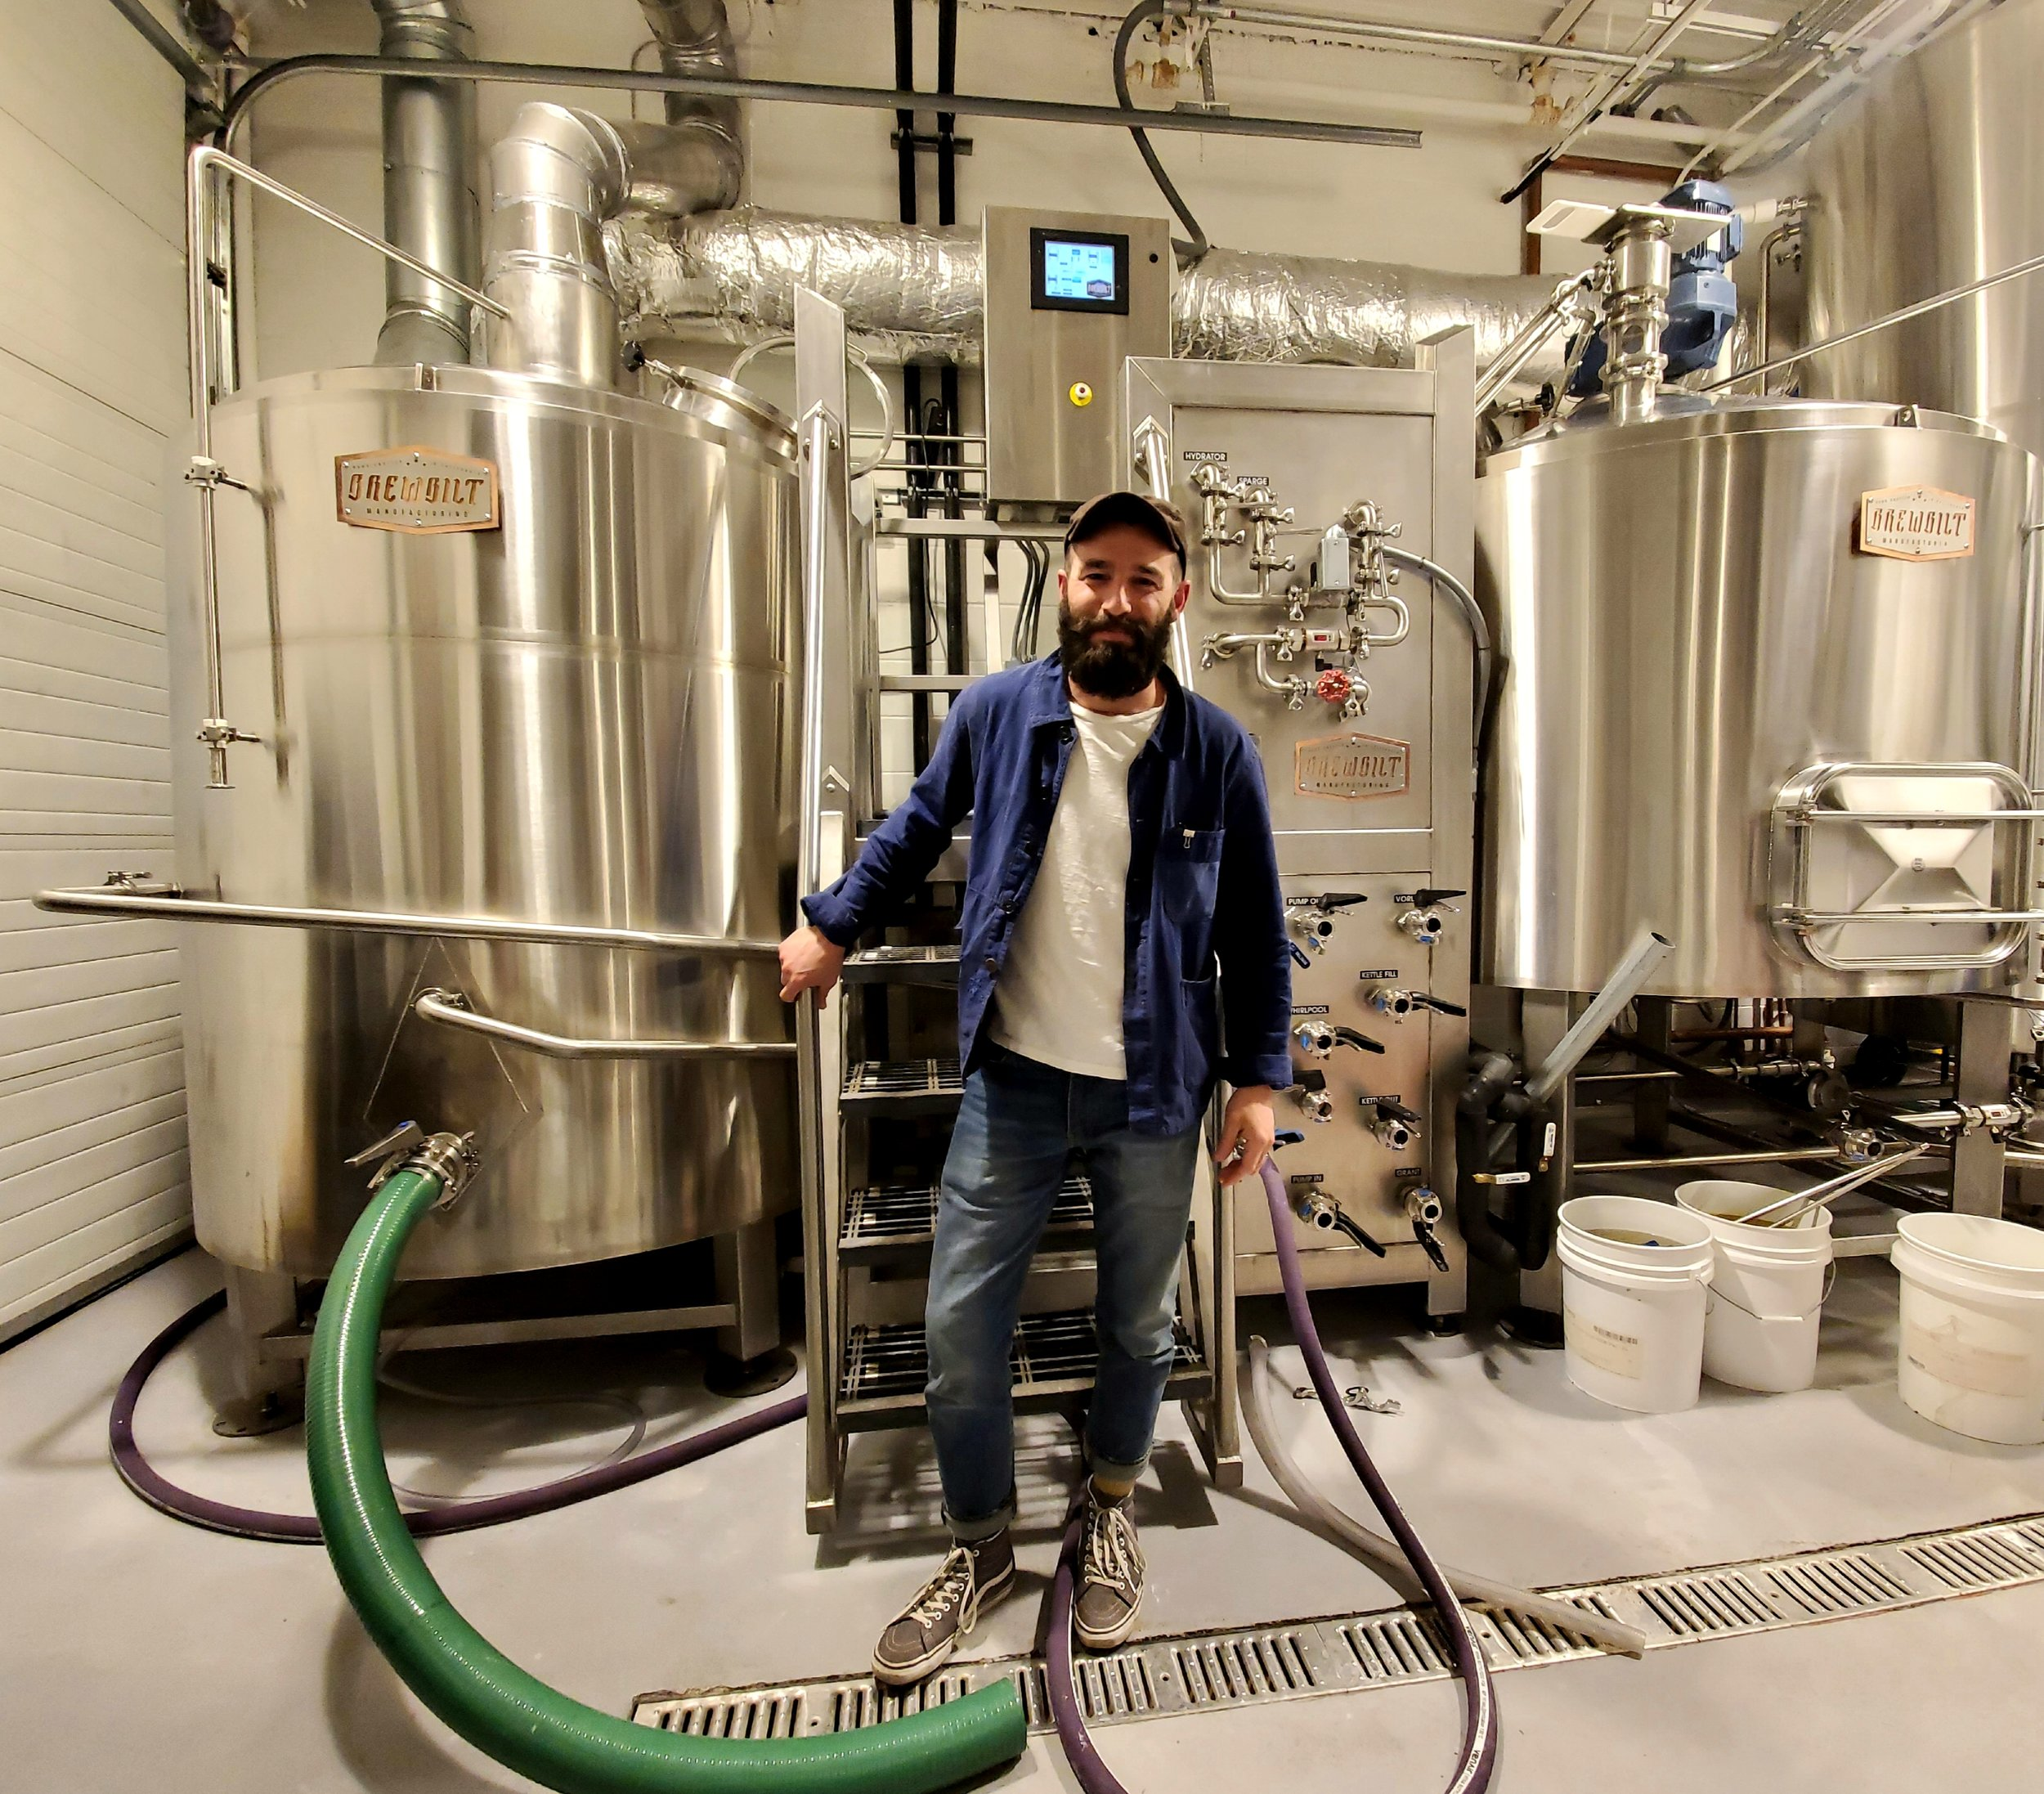 Pete Ternes, co-founder of Middle Brow Beer Company